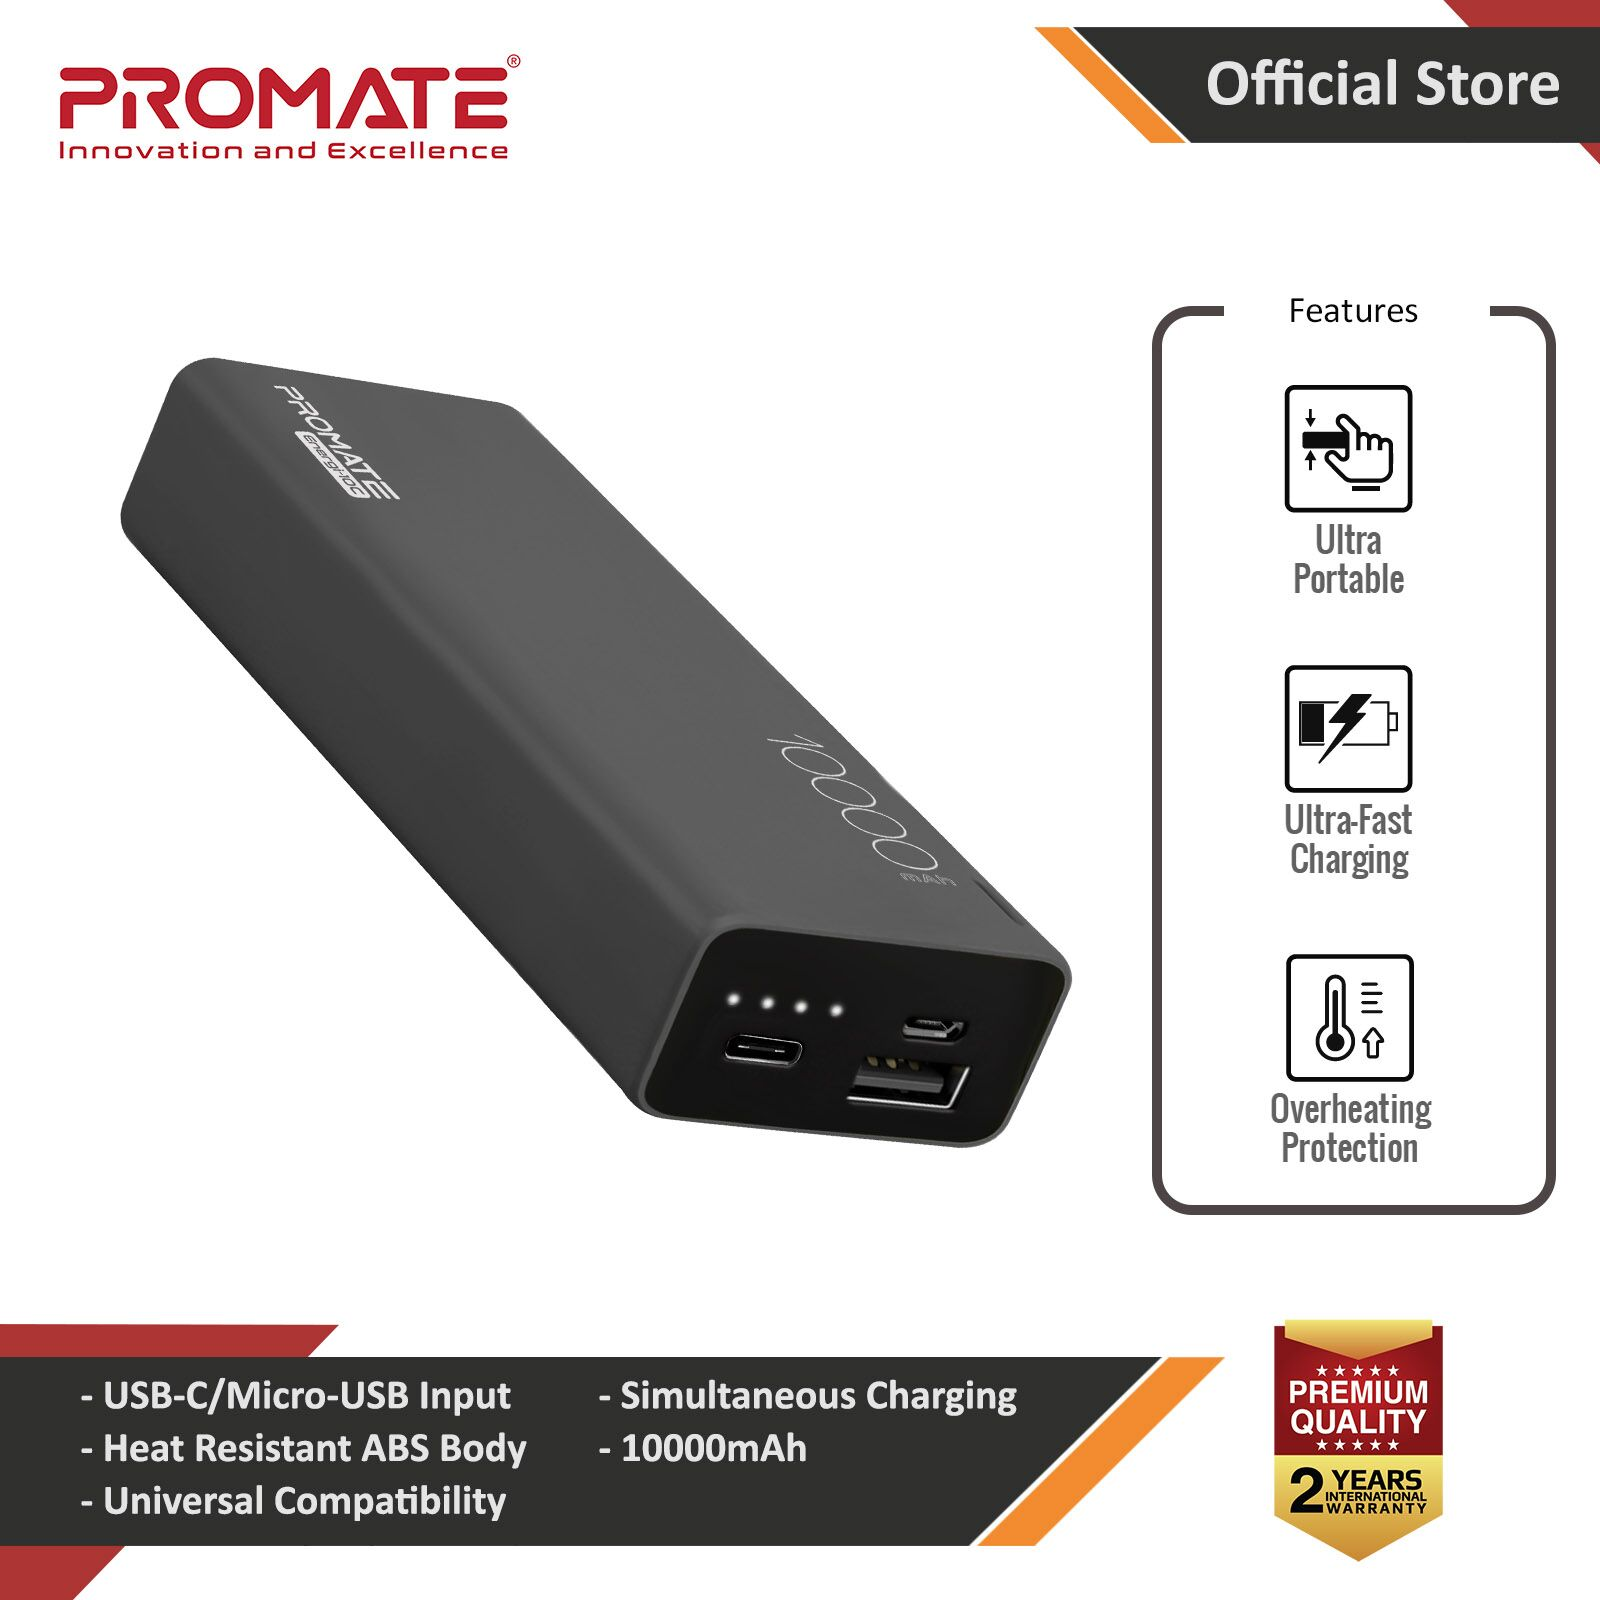 Picture of Promate USB C Power Bank Ultra-Slim 10000mAh Input Output Type-C External Battery Pack with 2.1A USB Charging Port and Over-Heating Protection for iPhone Samsung Pixel Type-c iPad Pro Energi-10C (Black) Red Design- Red Design Cases, Red Design Covers, iPad Cases and a wide selection of Red Design Accessories in Malaysia, Sabah, Sarawak and Singapore